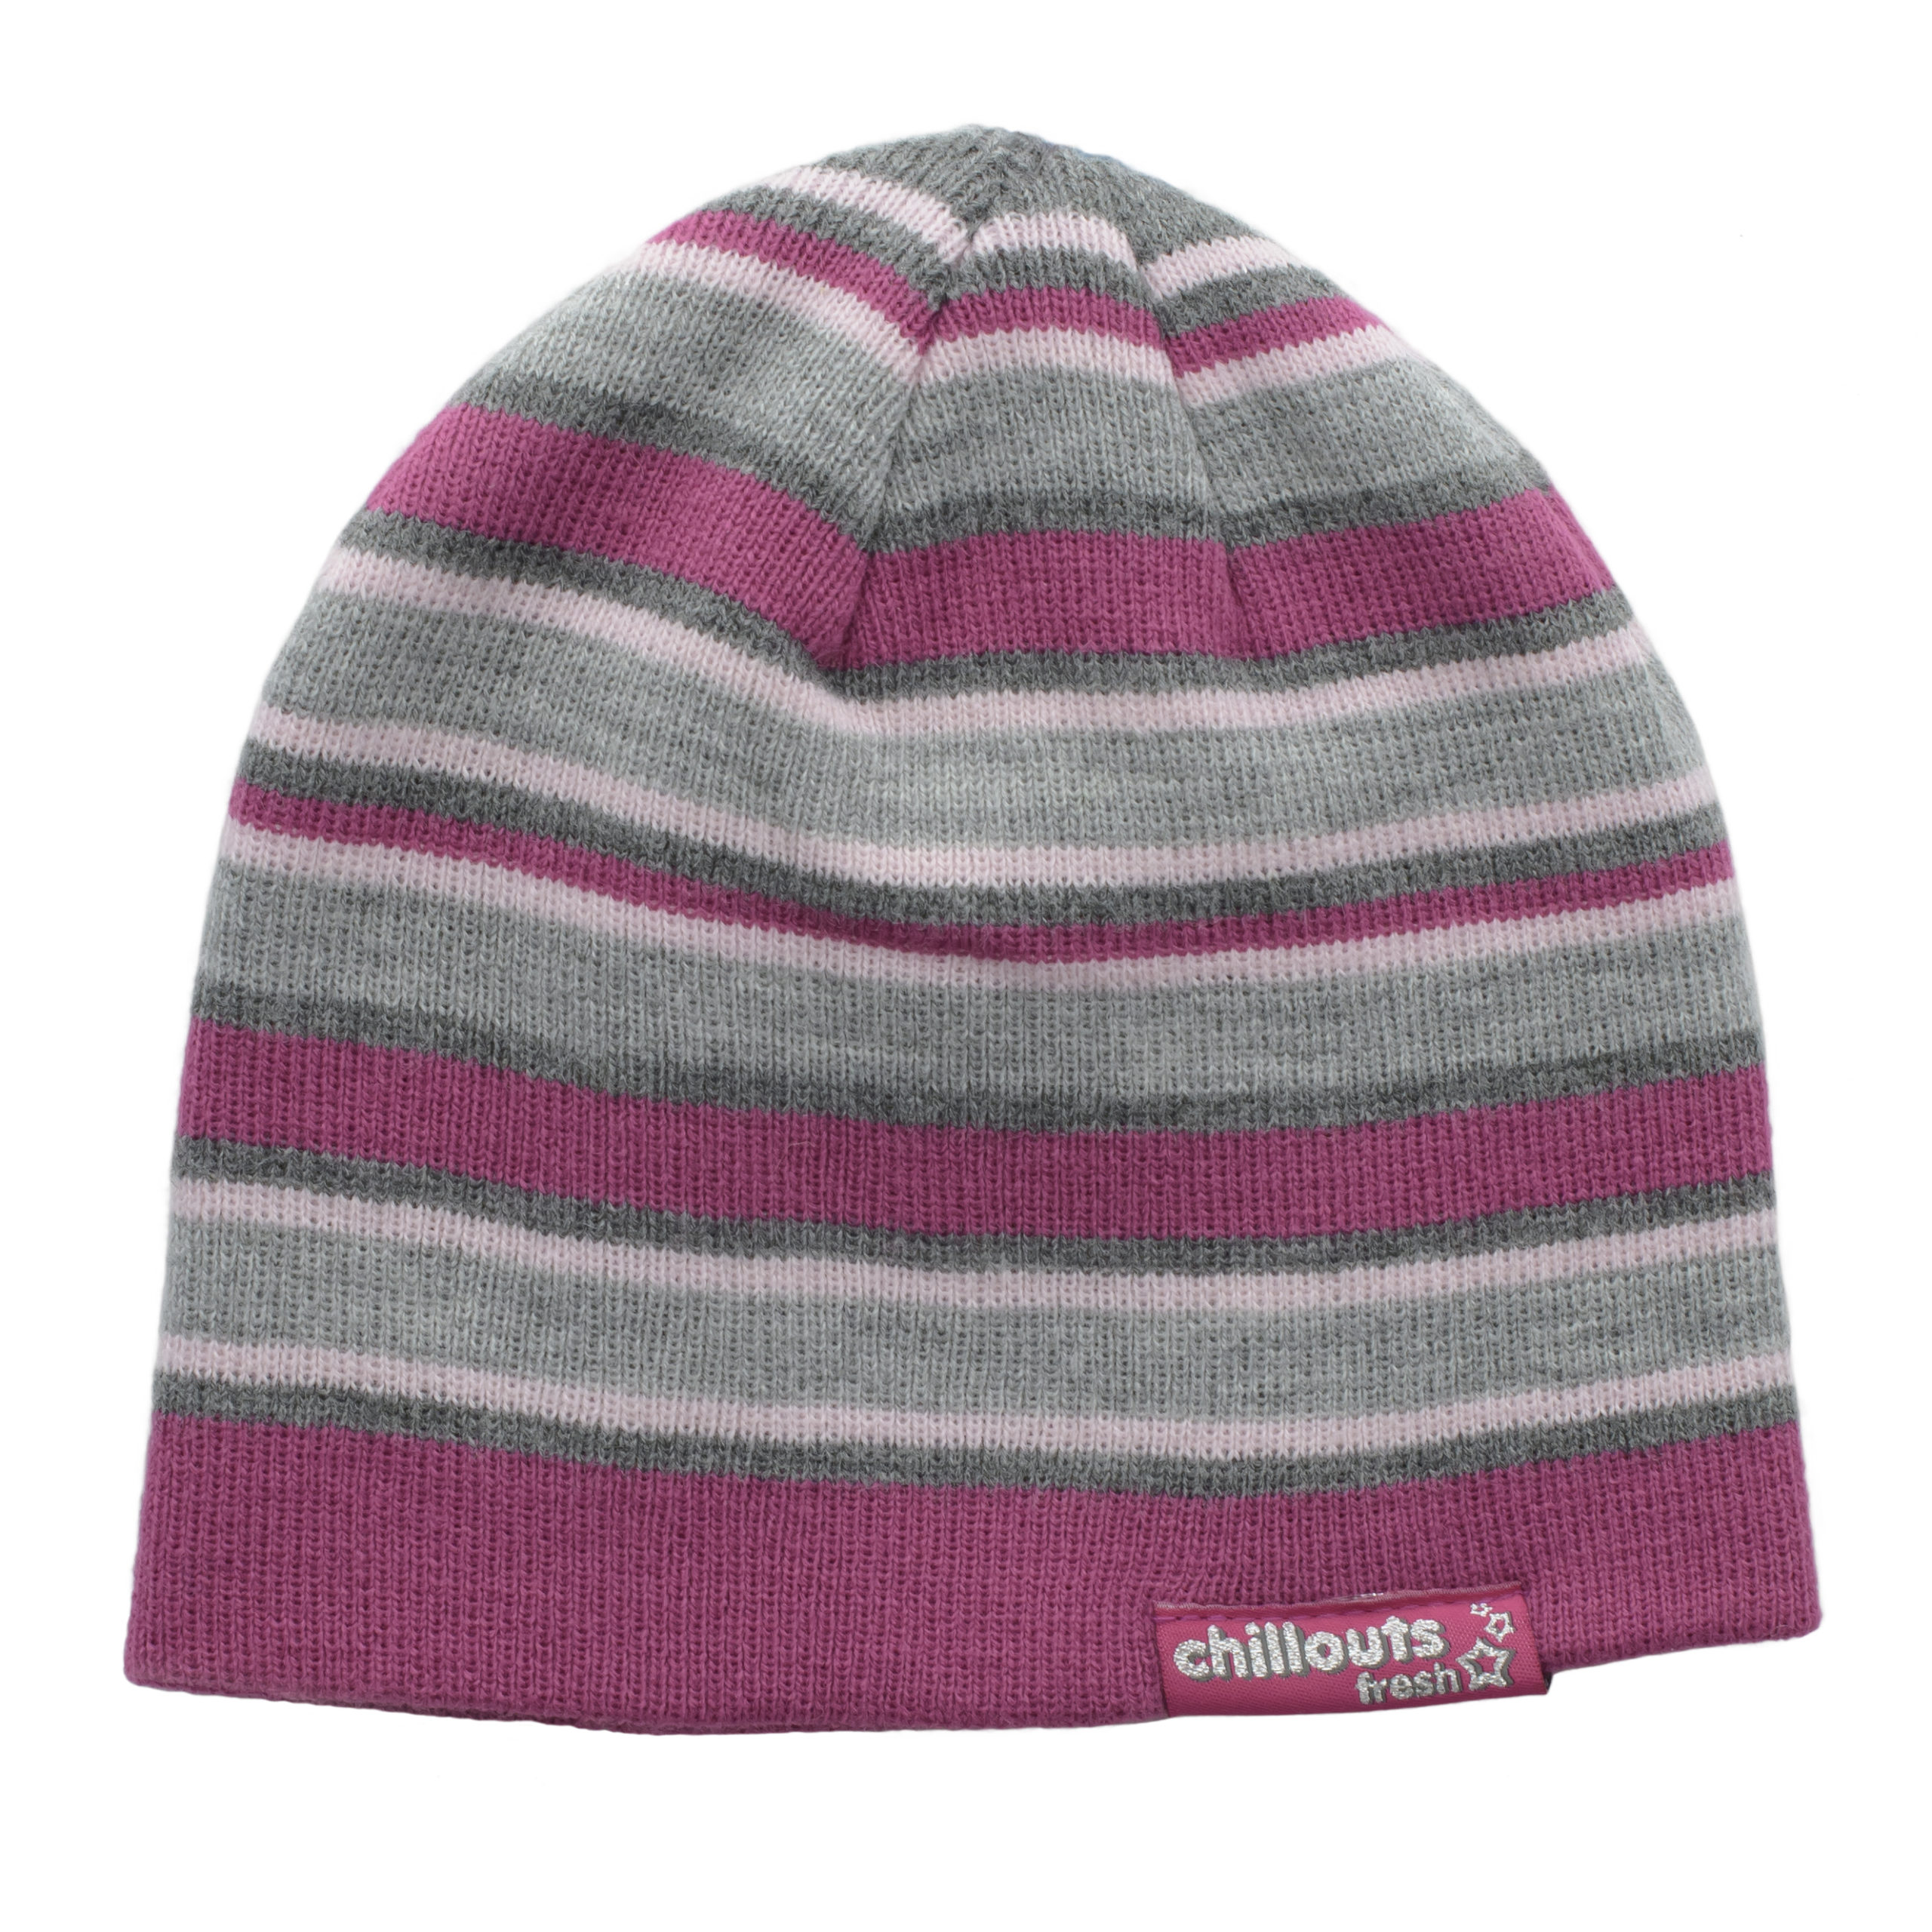 CHILLOUTS KID'S KNITTED BEANIE -PINK/GREY